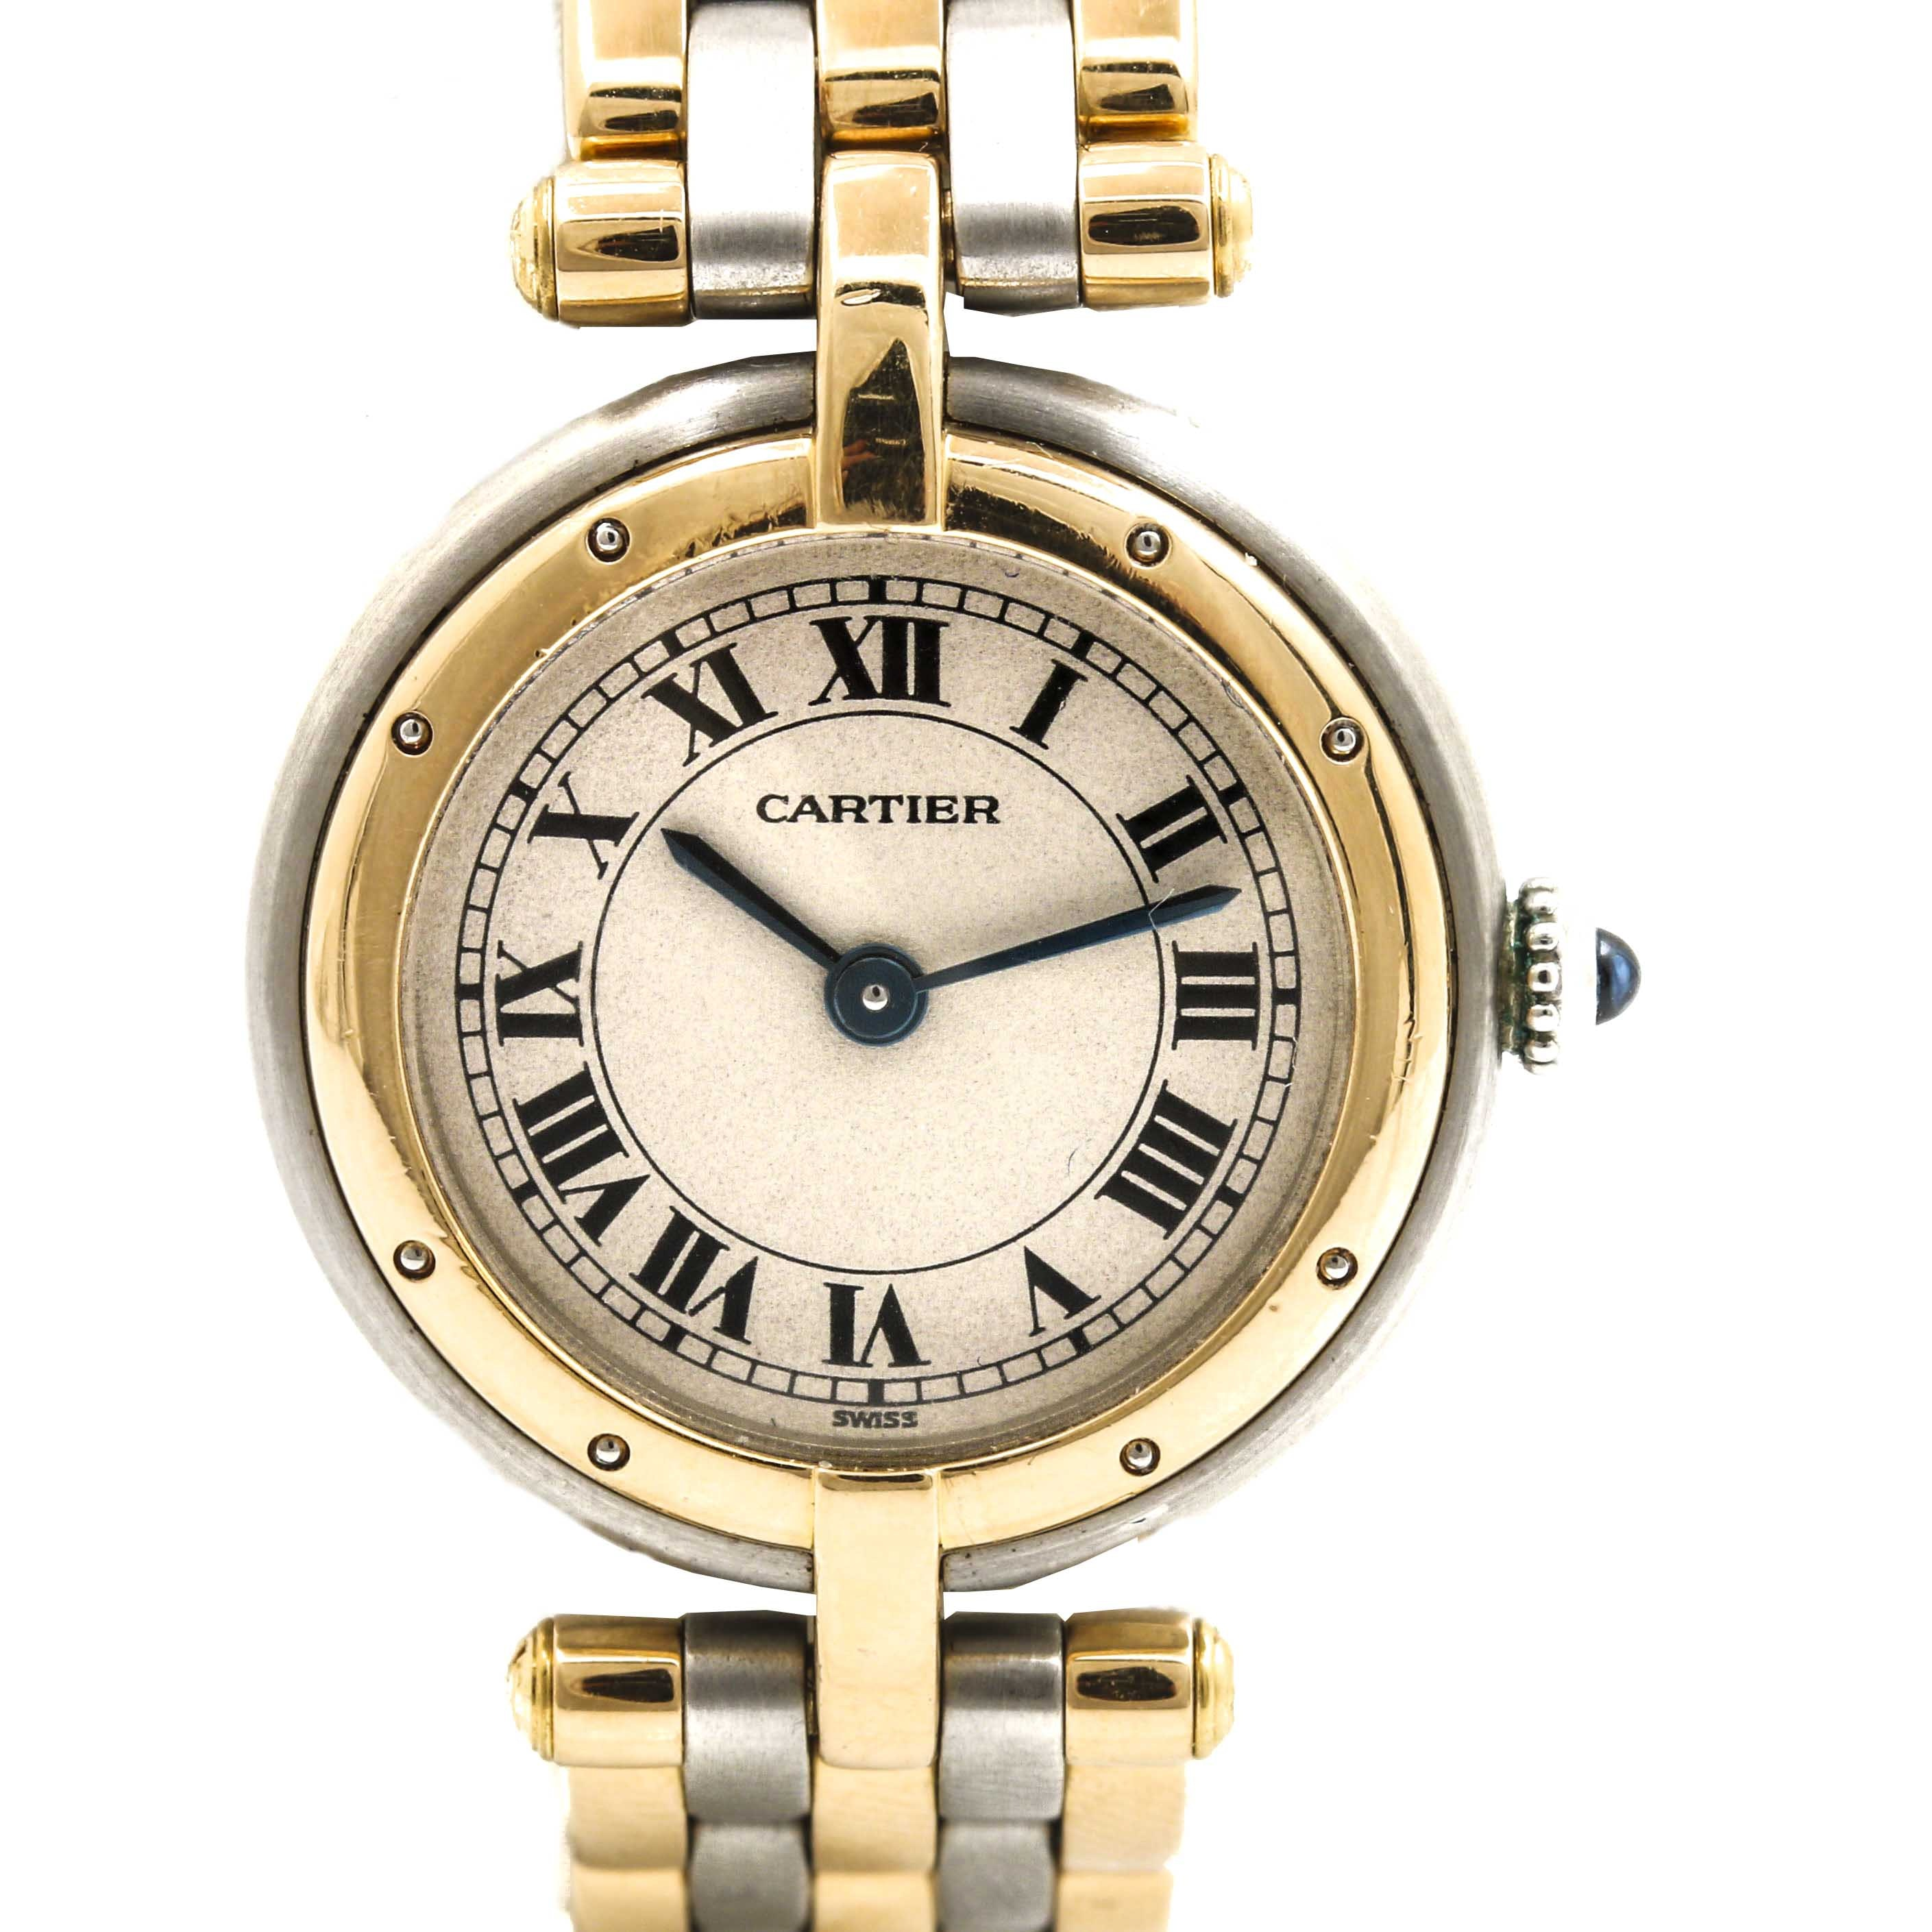 Cartier 18K Yellow Gold and Stainless Steel Wristwatch